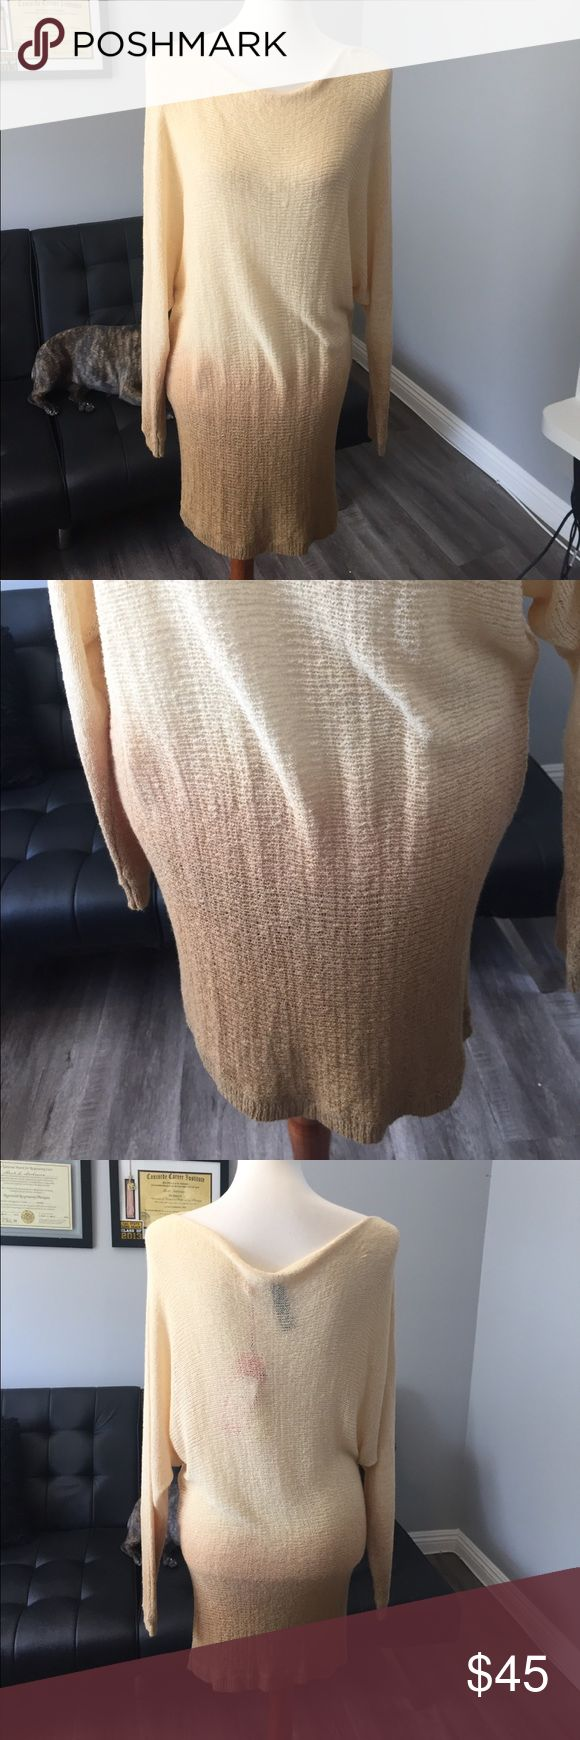 """NWT Beach Ombré cover up NWT ***Price Firm****super light weight knit ombré dolman style sweater but it so light weight I might even call it a shirt (maybe) chest 19"""" length 28"""" one size fits most very stretchy (Not Anthro just need exposure) brand is D&K boutique brand Anthropologie Tops Tees - Long Sleeve"""